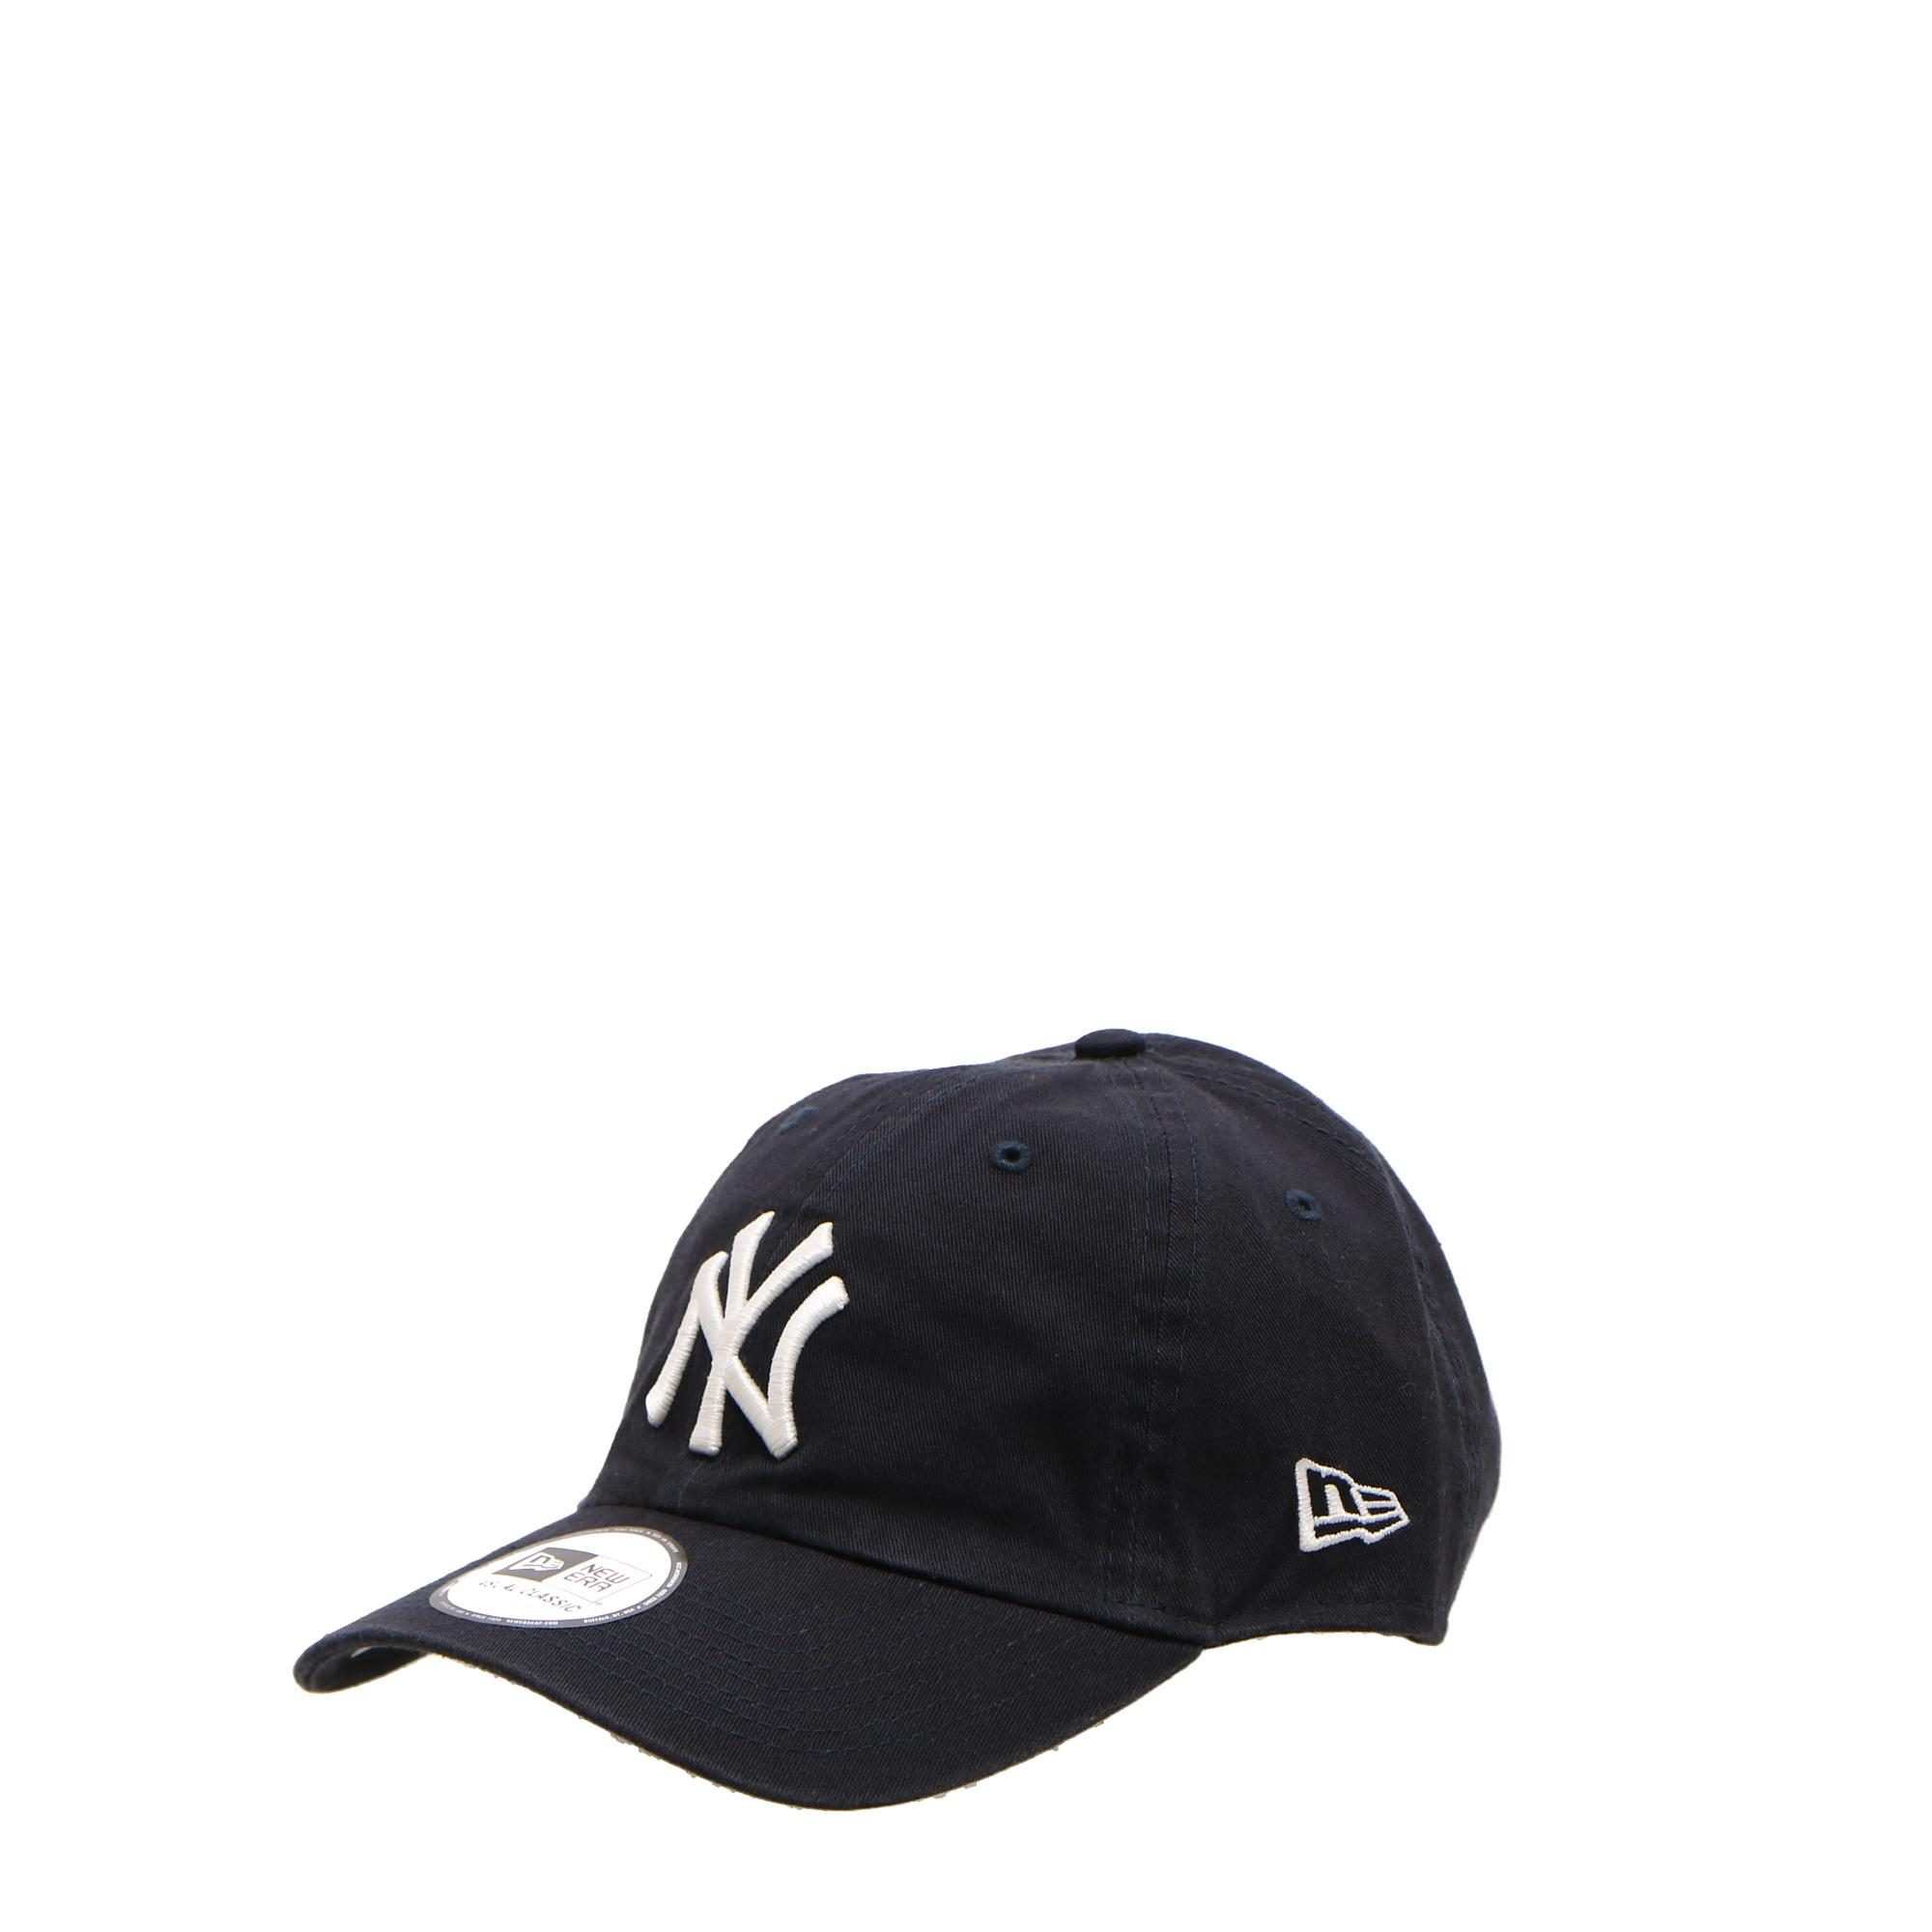 New Era 920 Washed Casual Classic Ny Yankees Navy WHITE